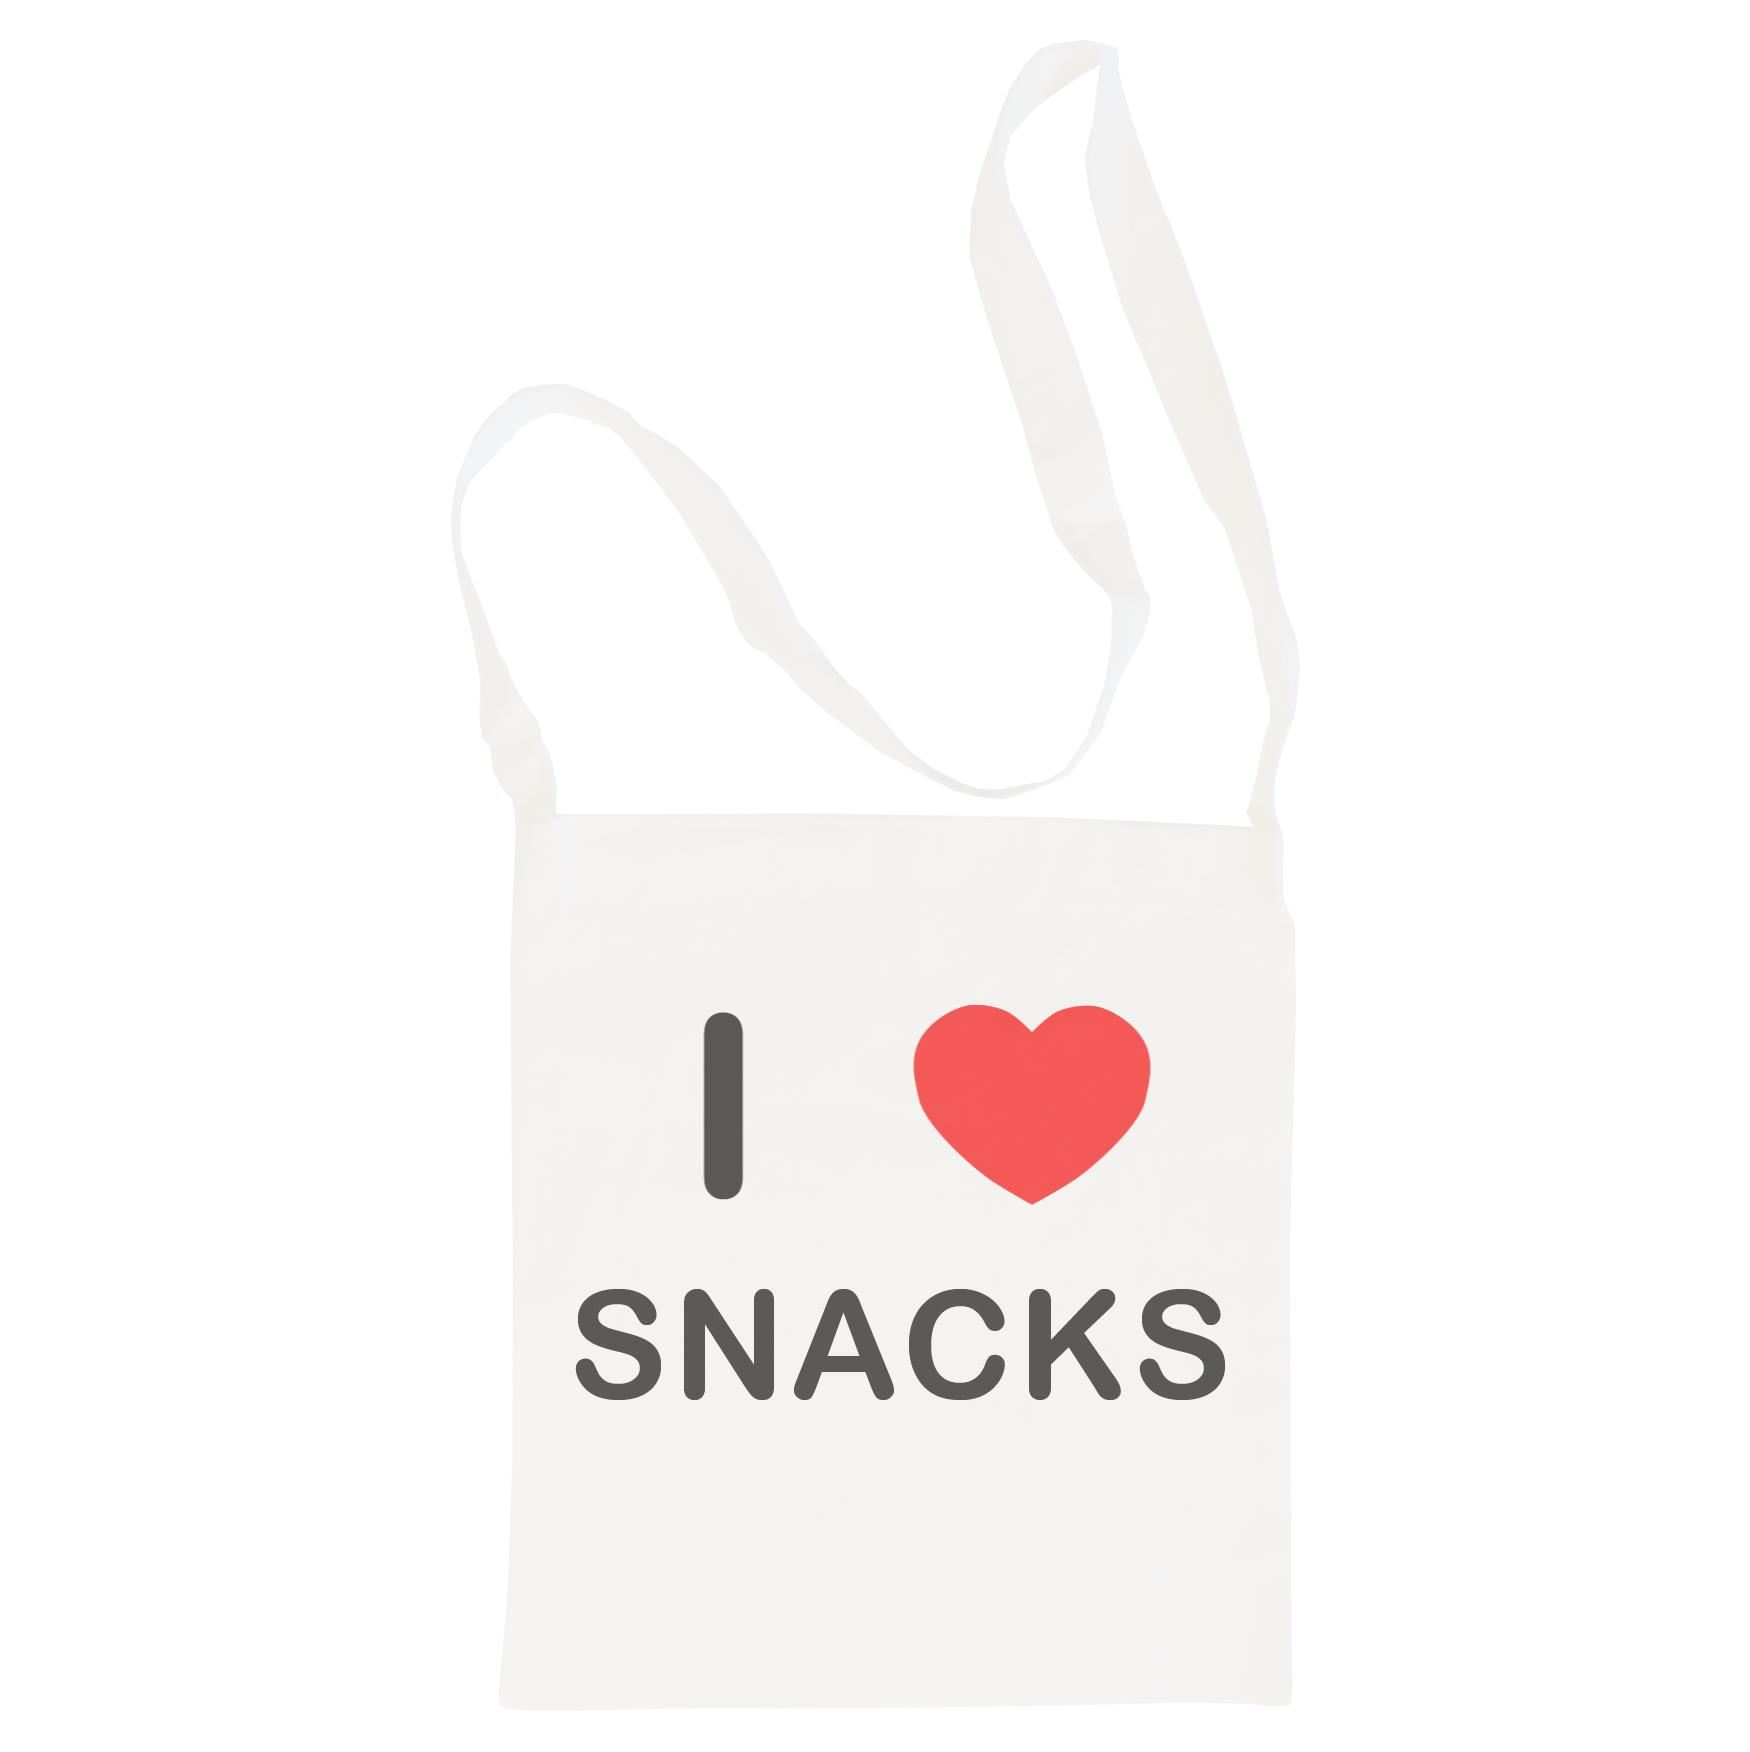 I Love Snacks - Cotton Bag | Size choice Tote, Shopper or Sling